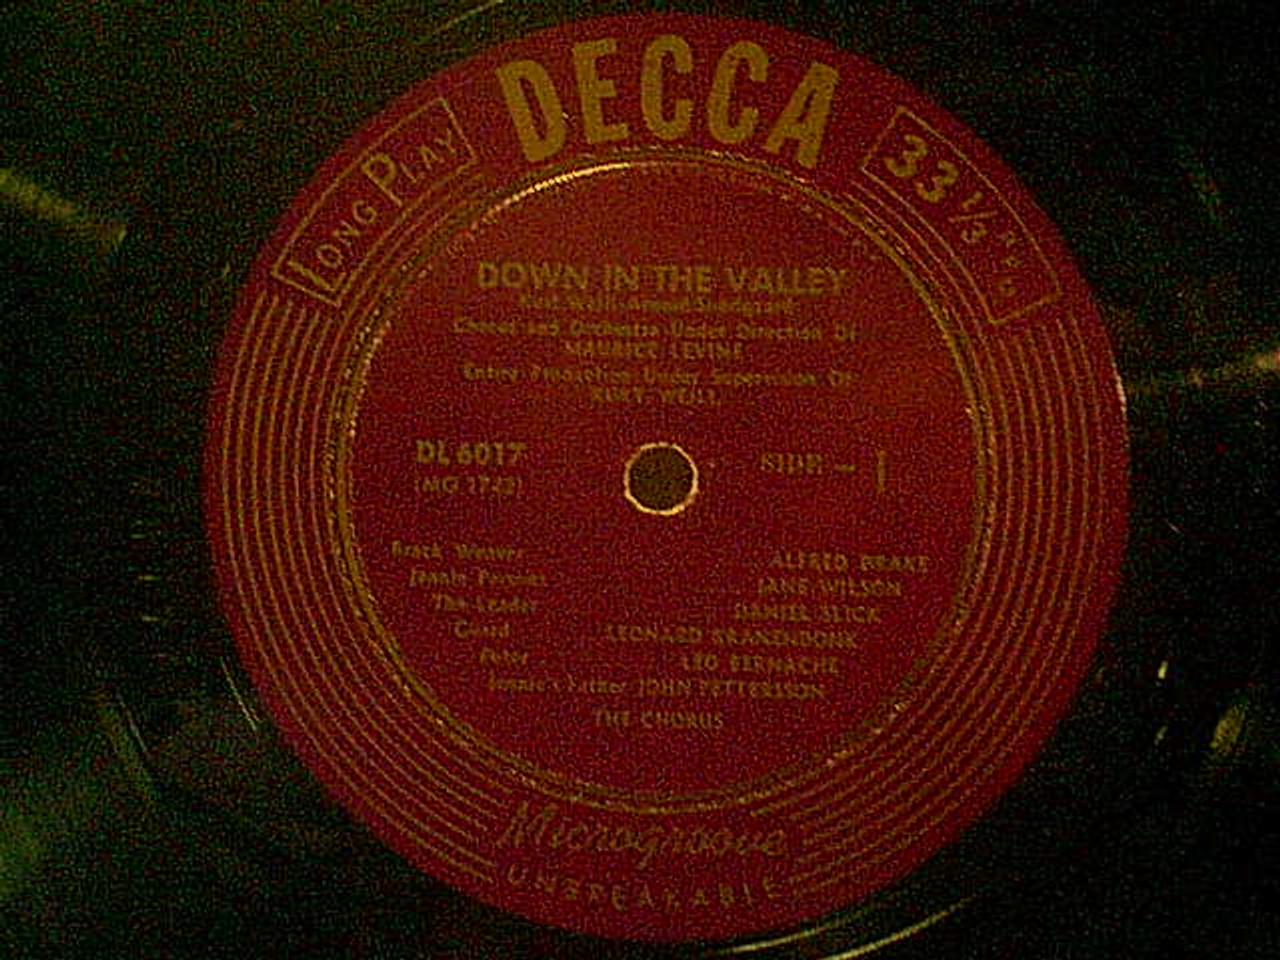 """Drake, Alfred """"Down In The Valley"""" 1950 10"""" LP Signed Autograph"""